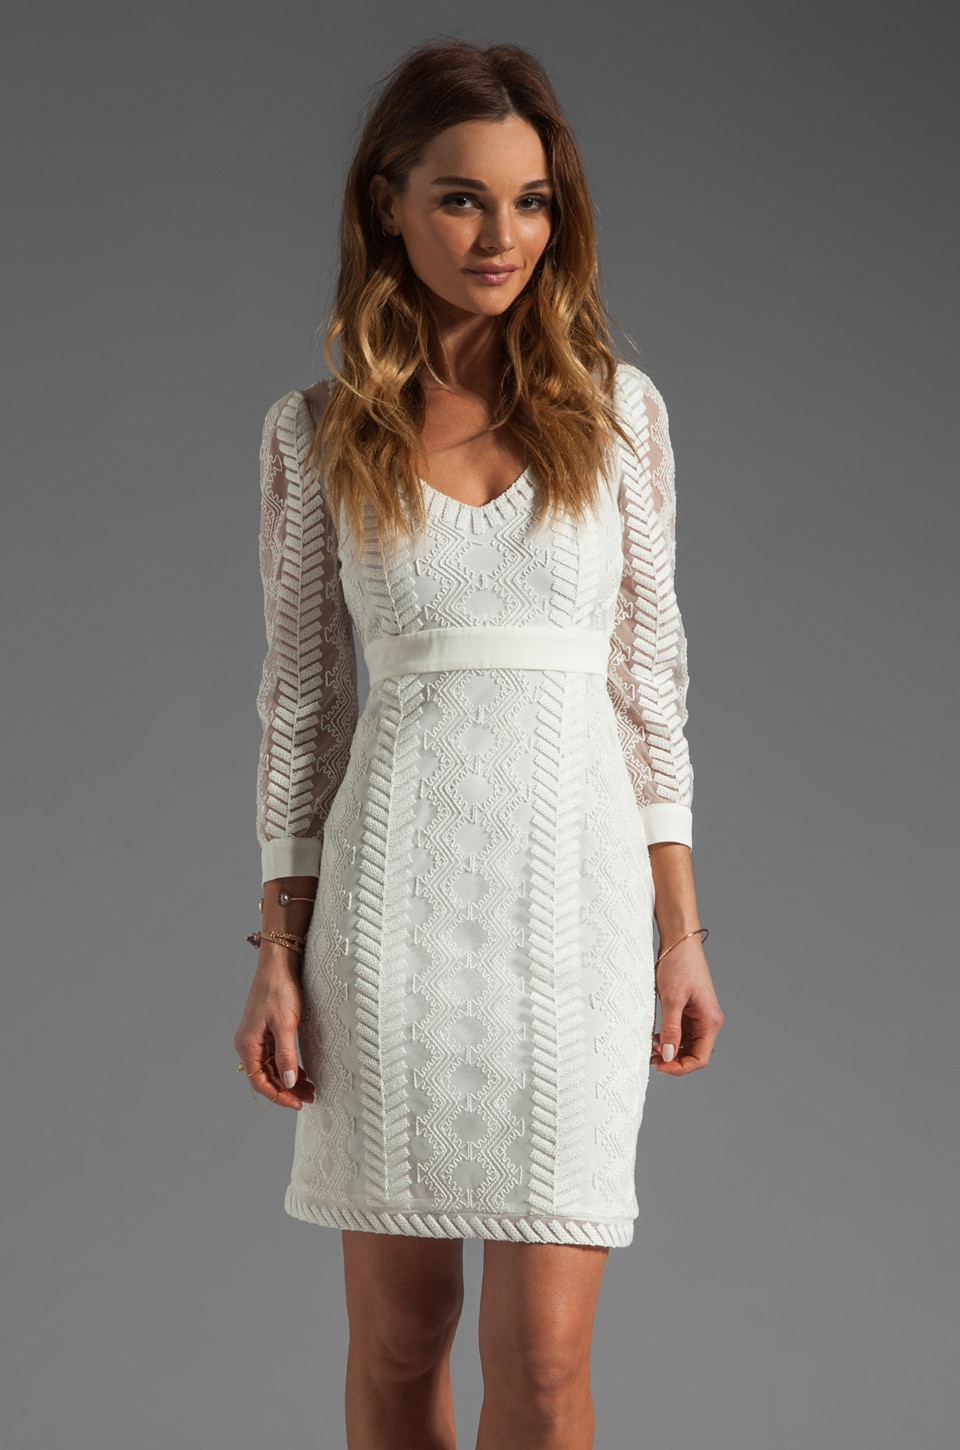 Catherine Malandrino Cord Embroidery Dress in Ivory